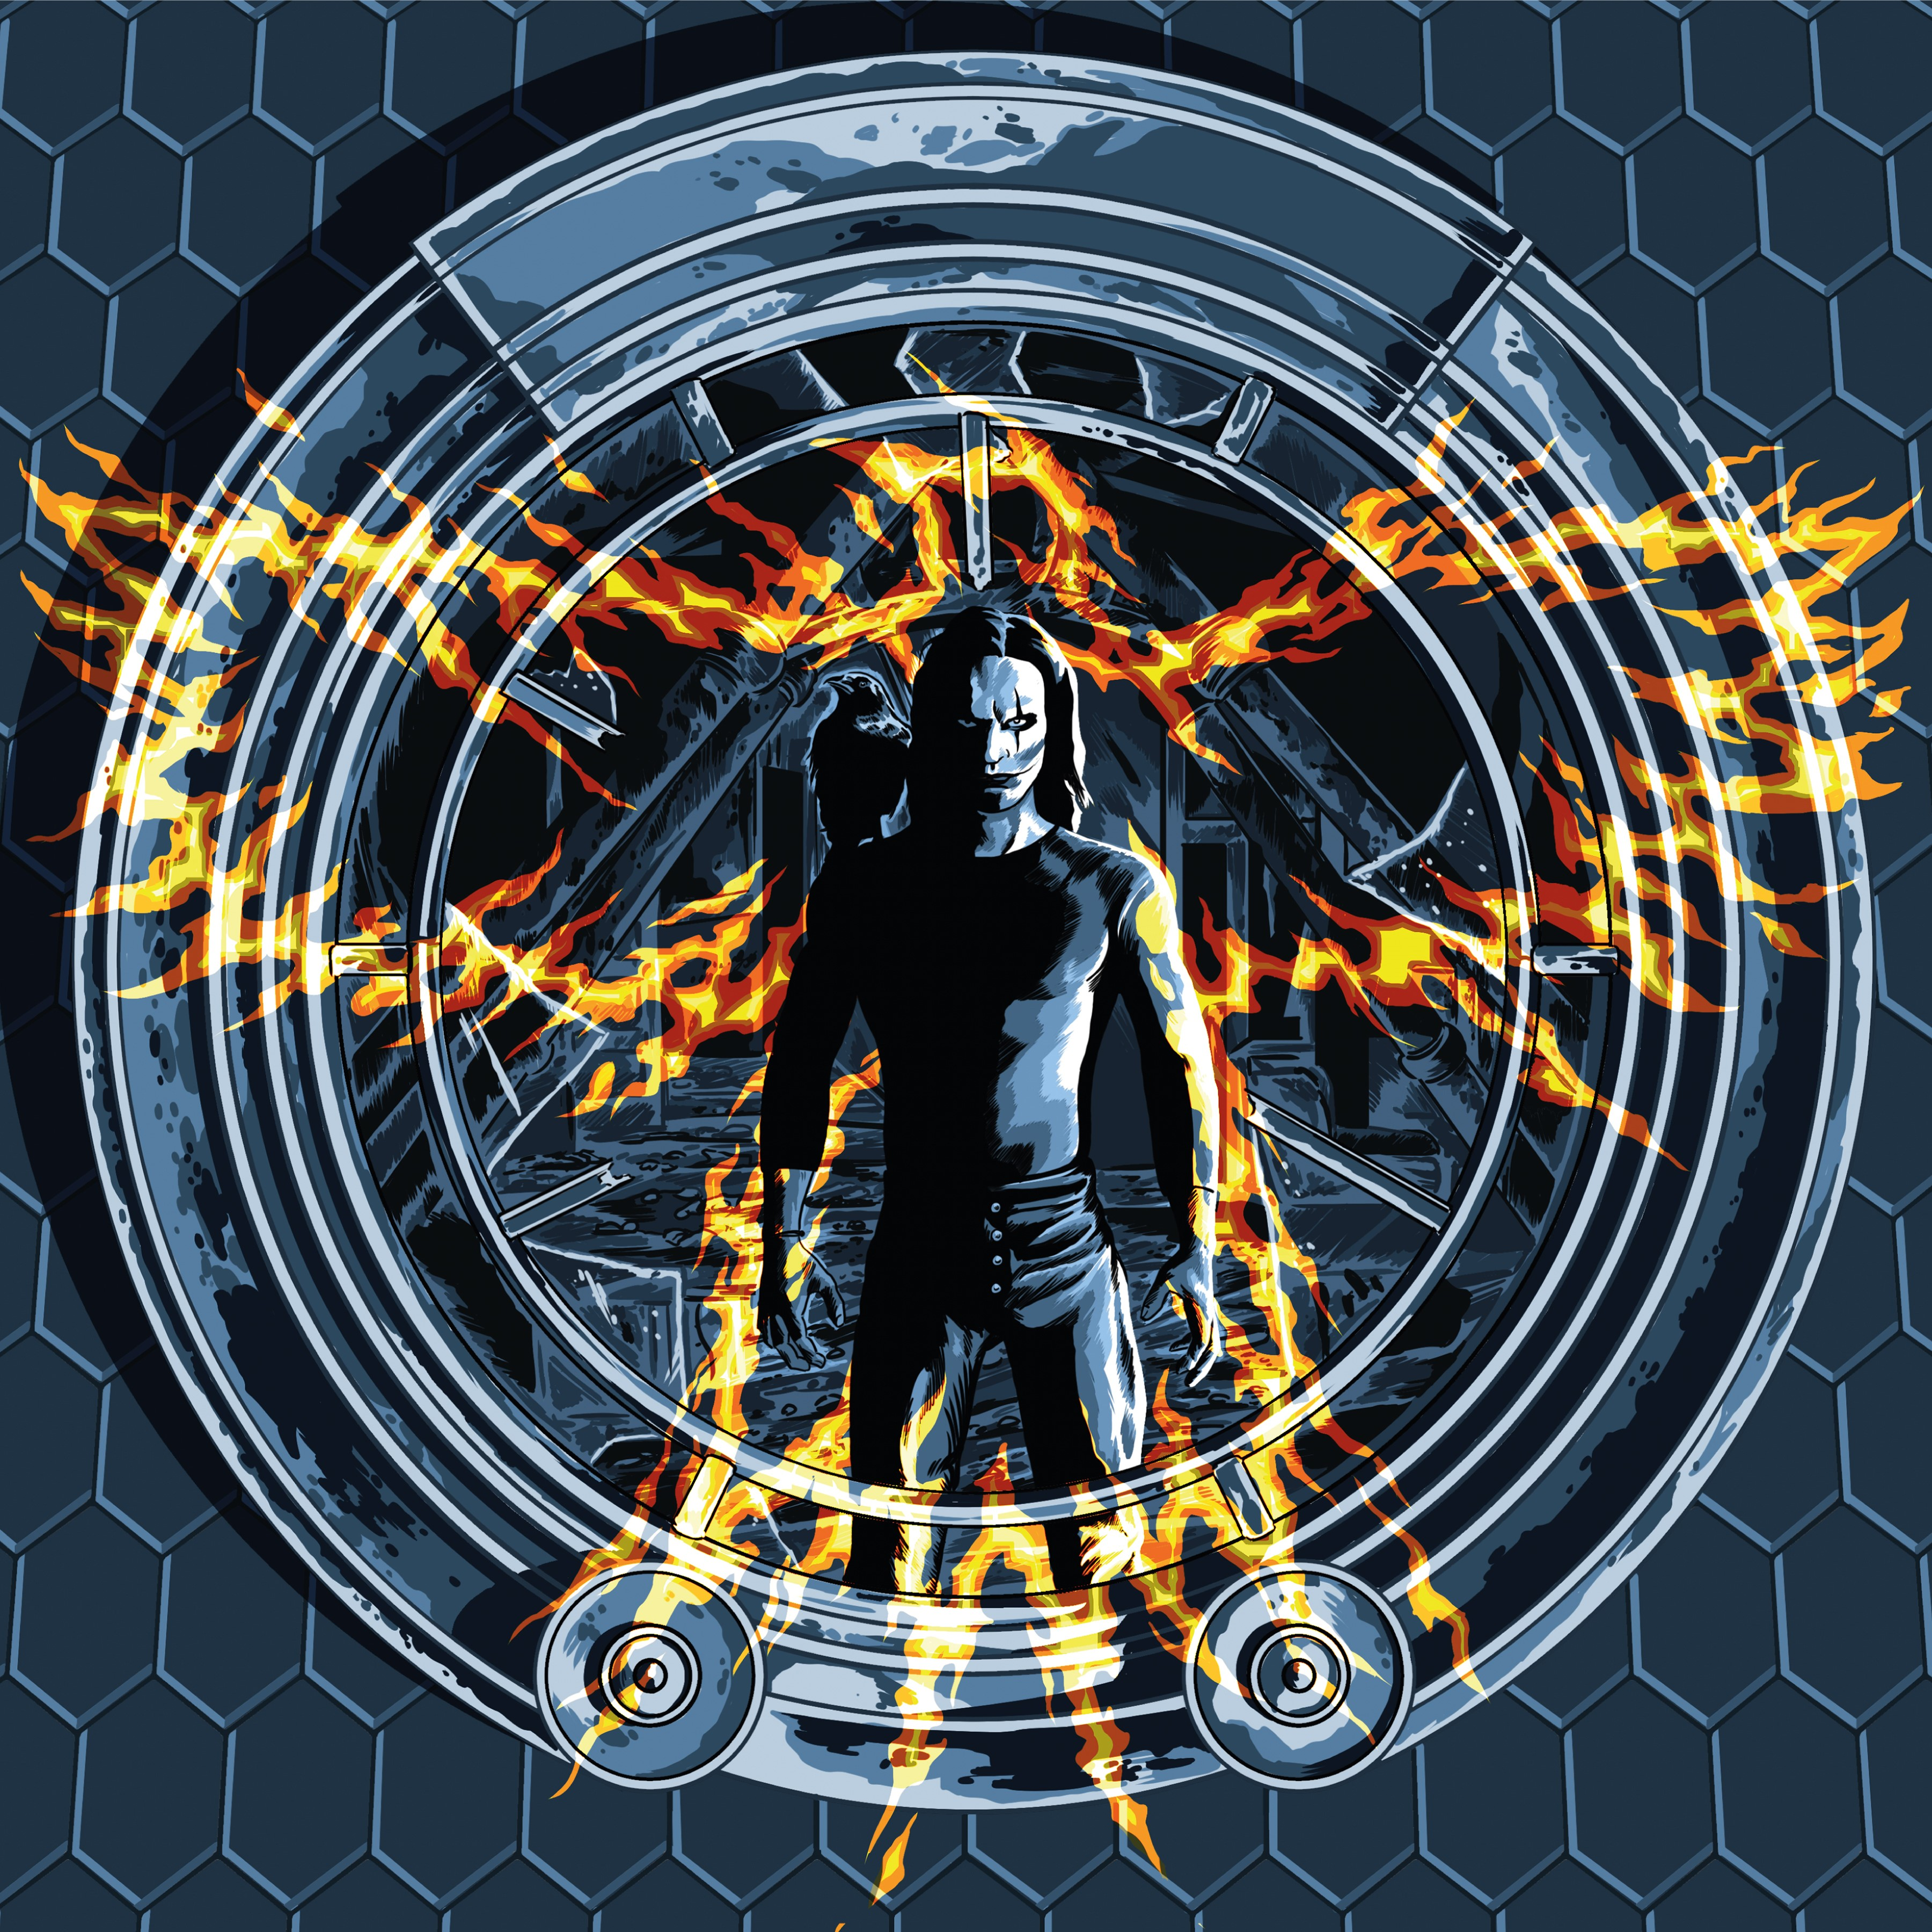 The Crow - Revell, Graeme / OST - Musik - SOUNDTRACK/SCORE - 0030206549911 - October 30, 2015